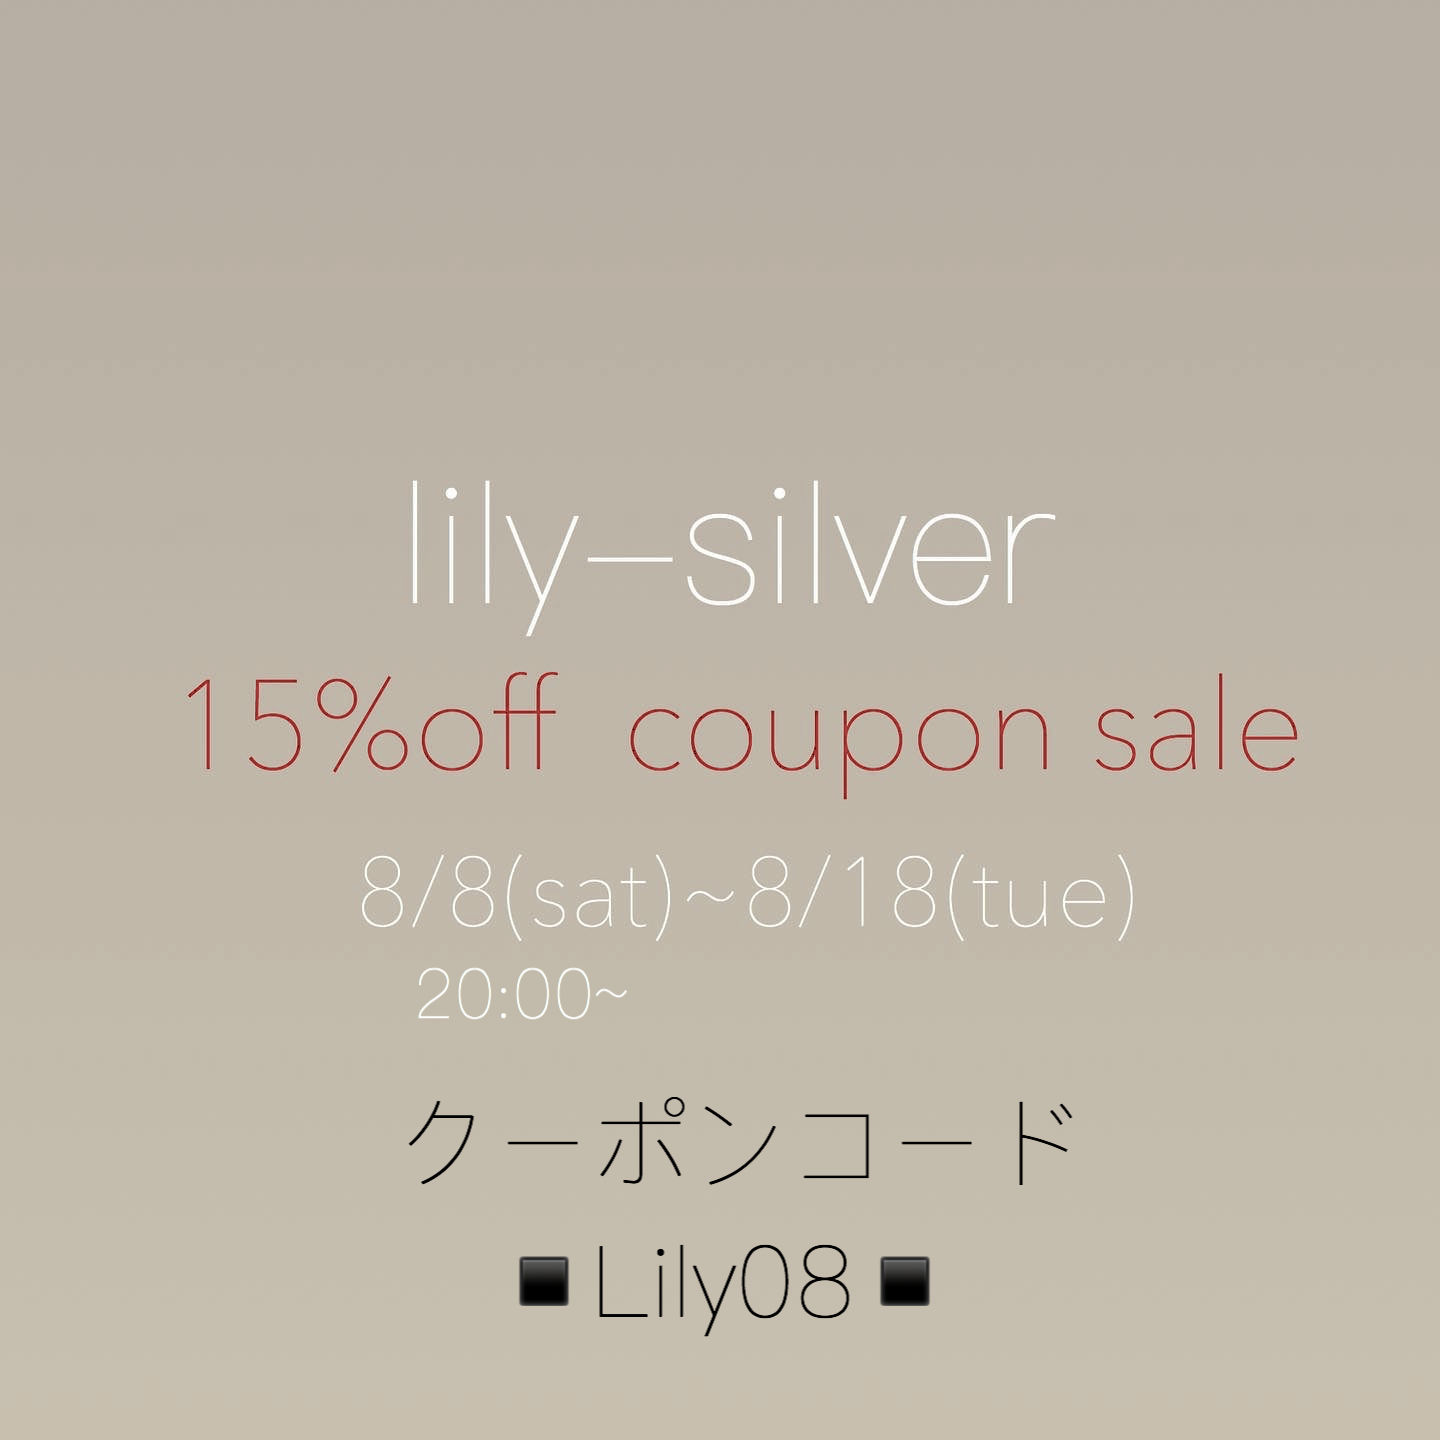 lily-silver